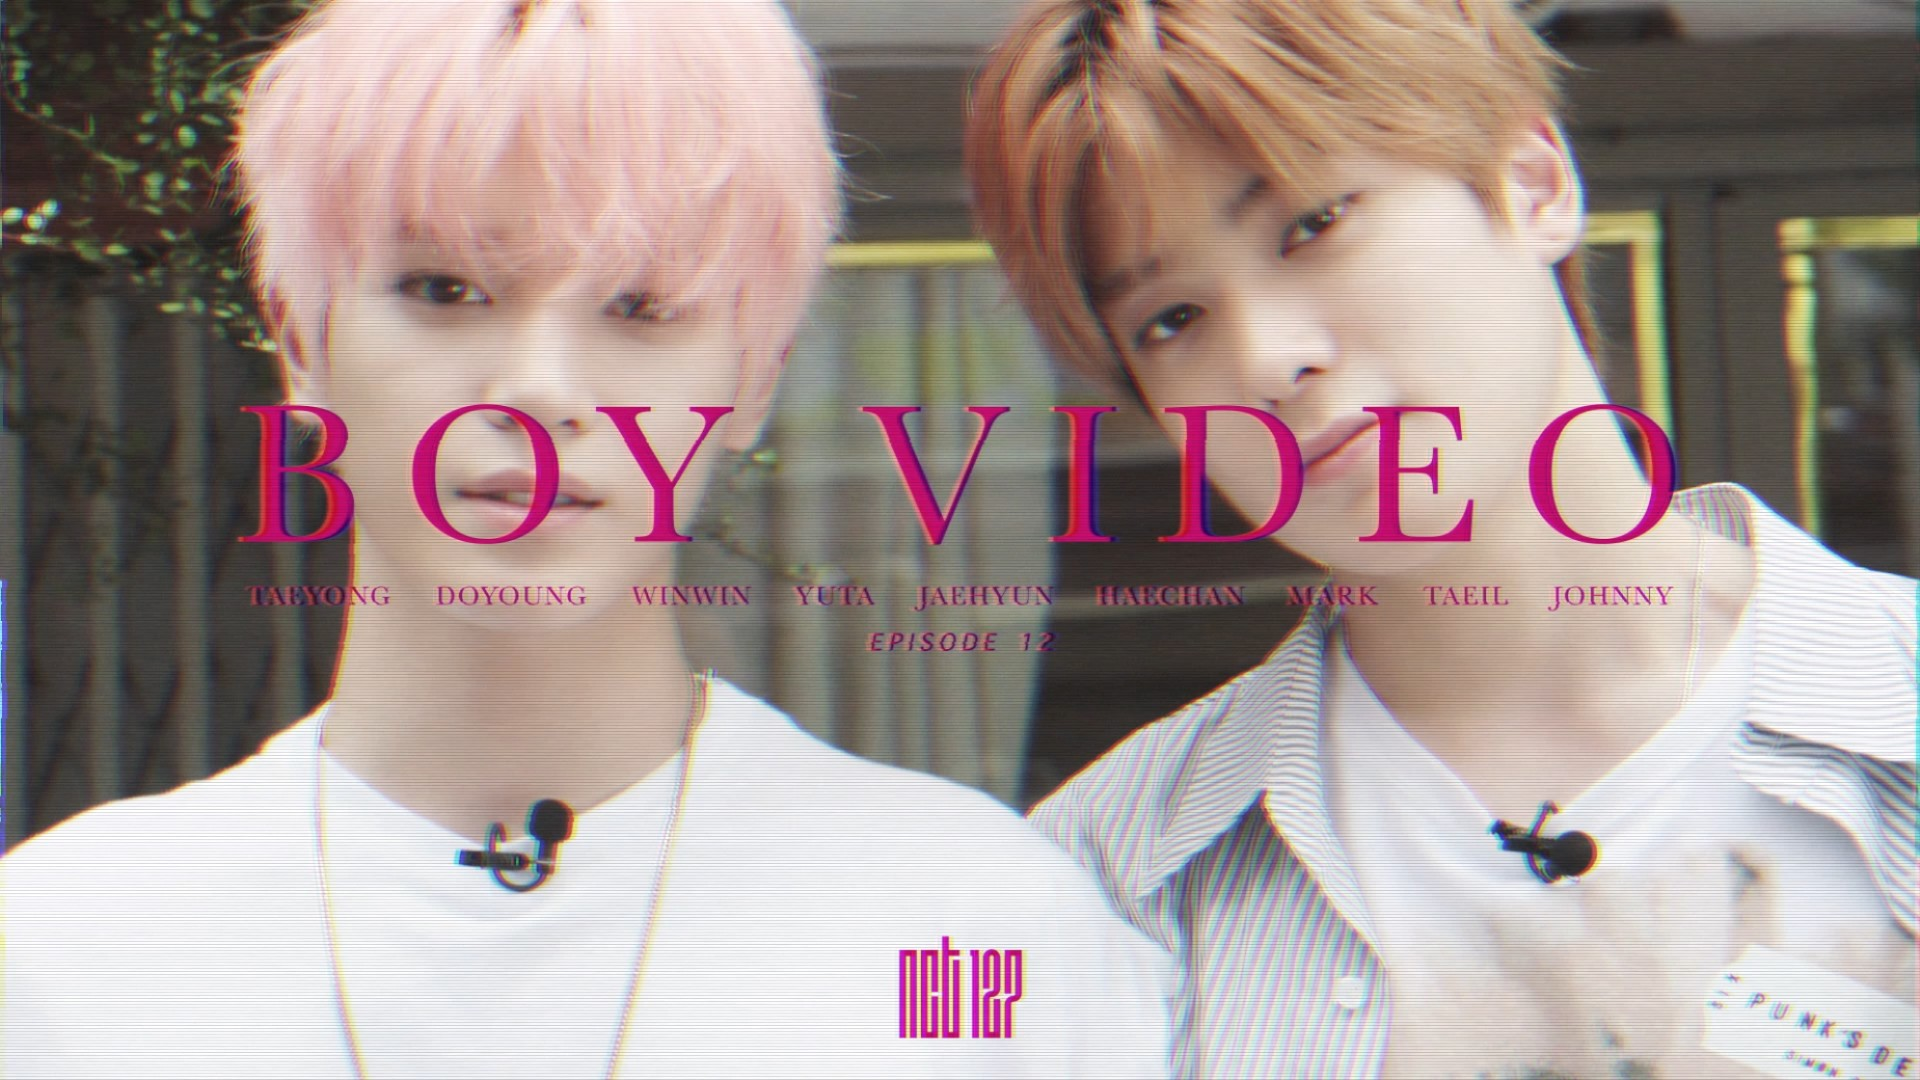 NCT 127 BOY VIDEO EP.12